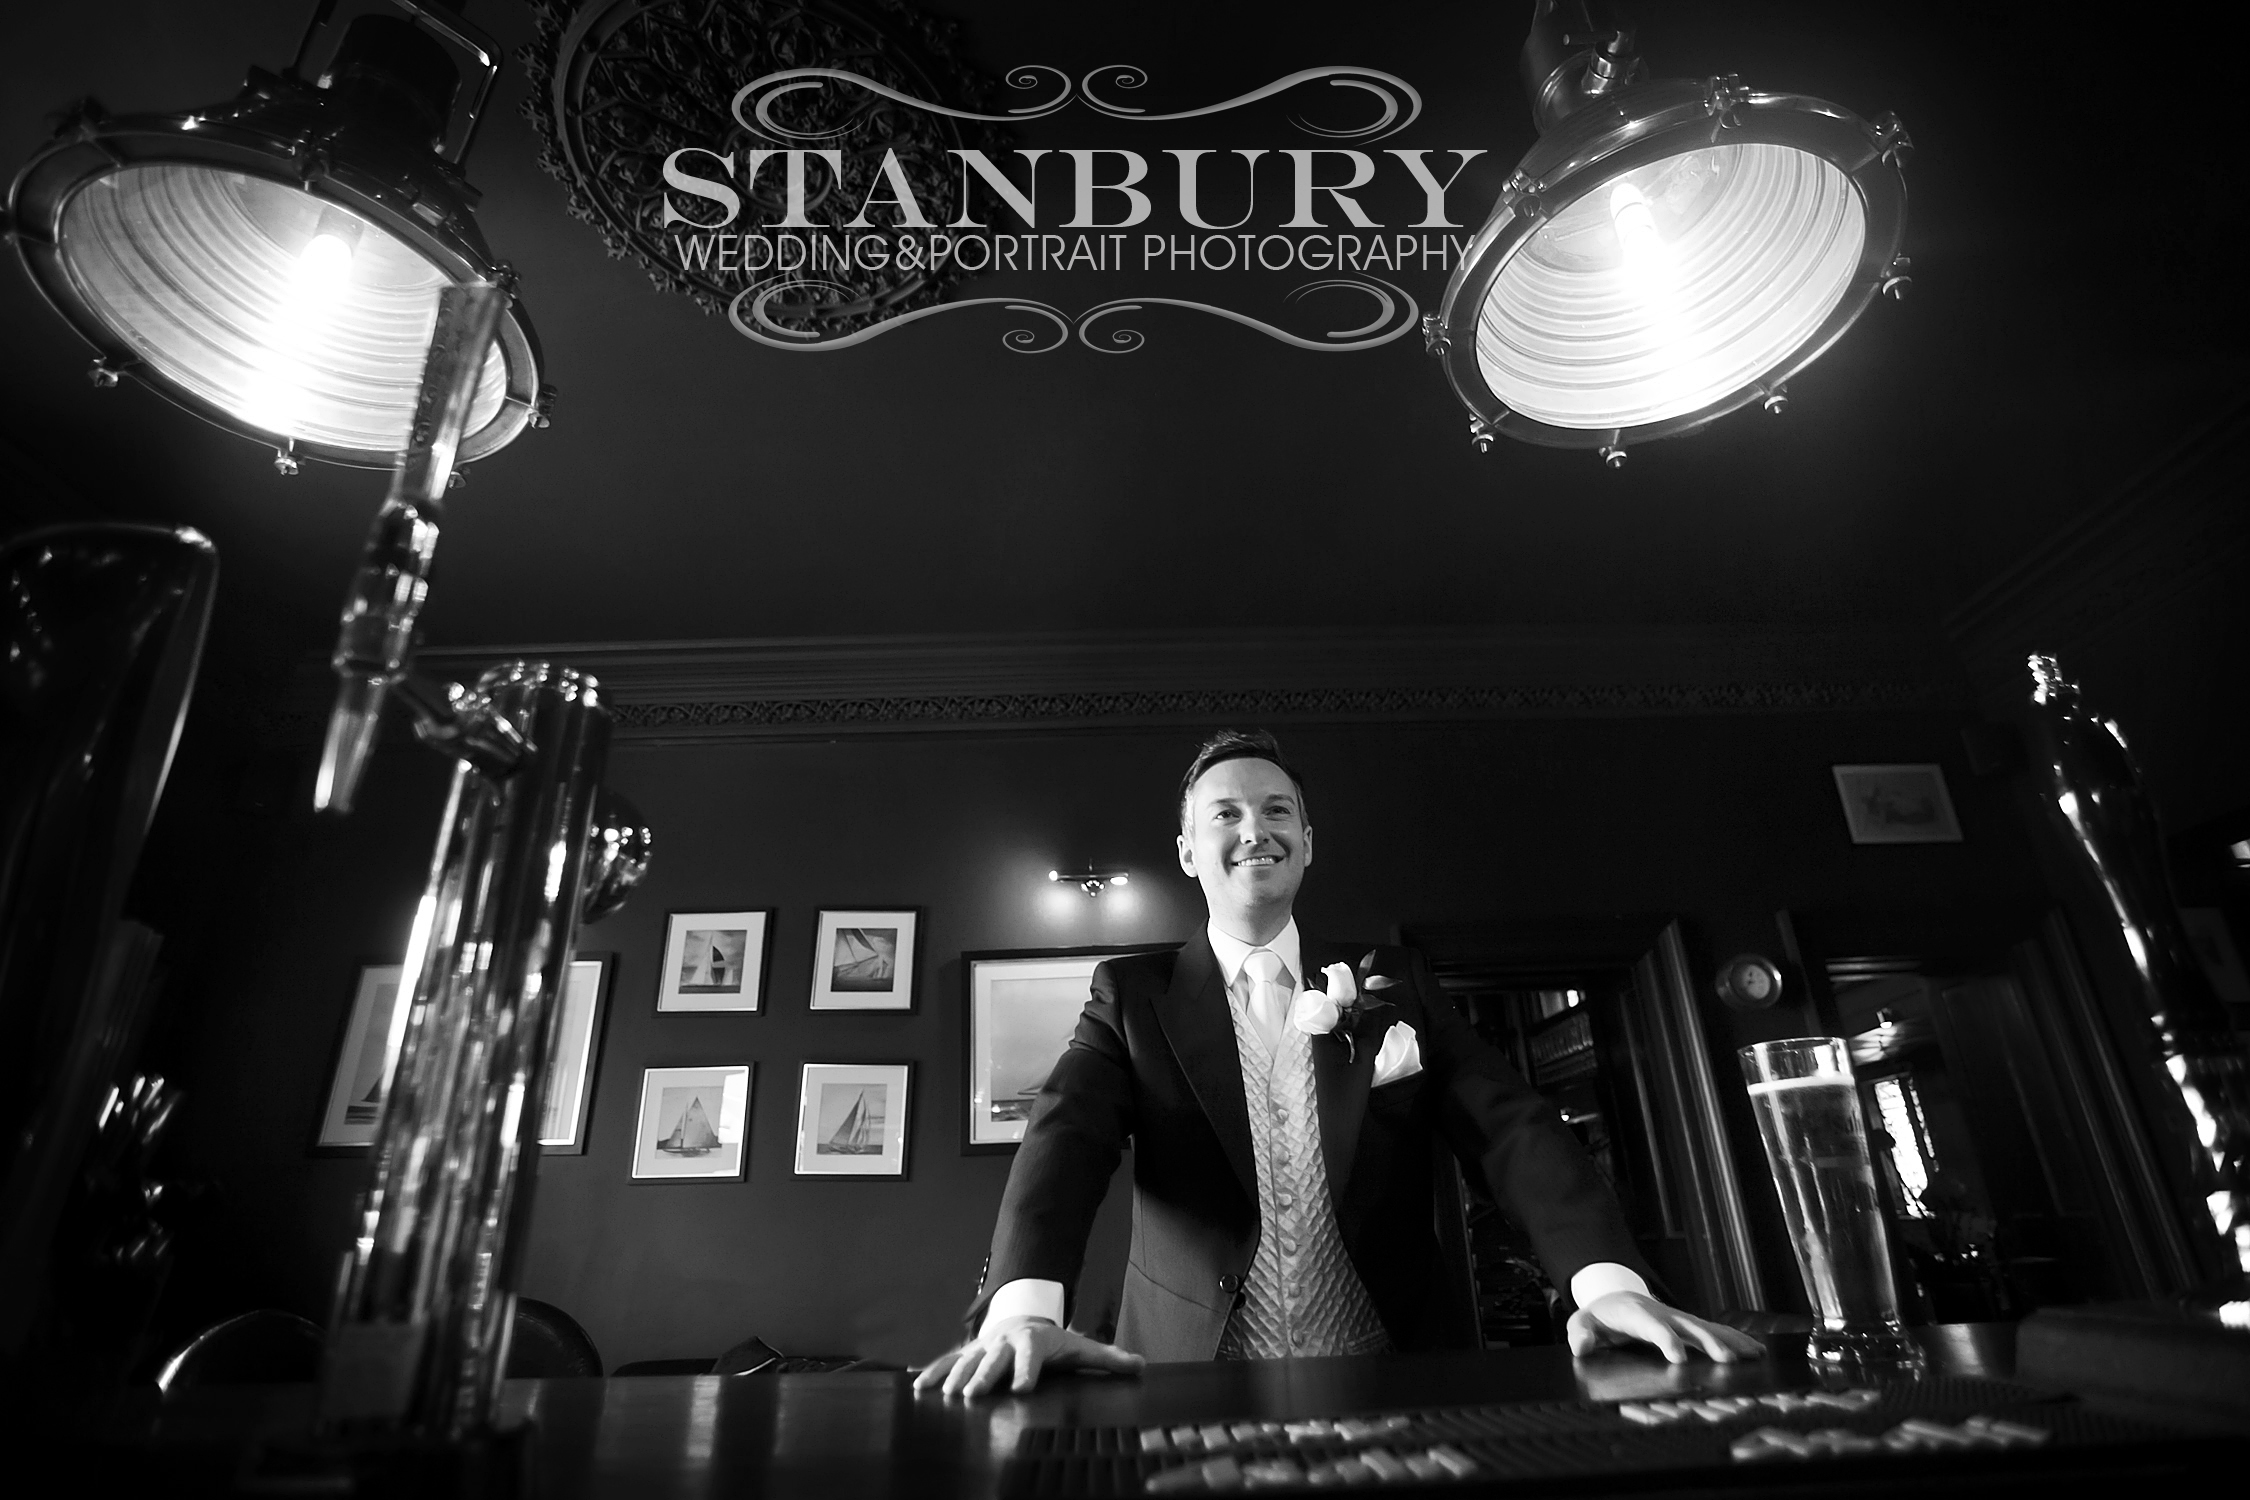 wedding photography at mitton hall by stanbury studio.com